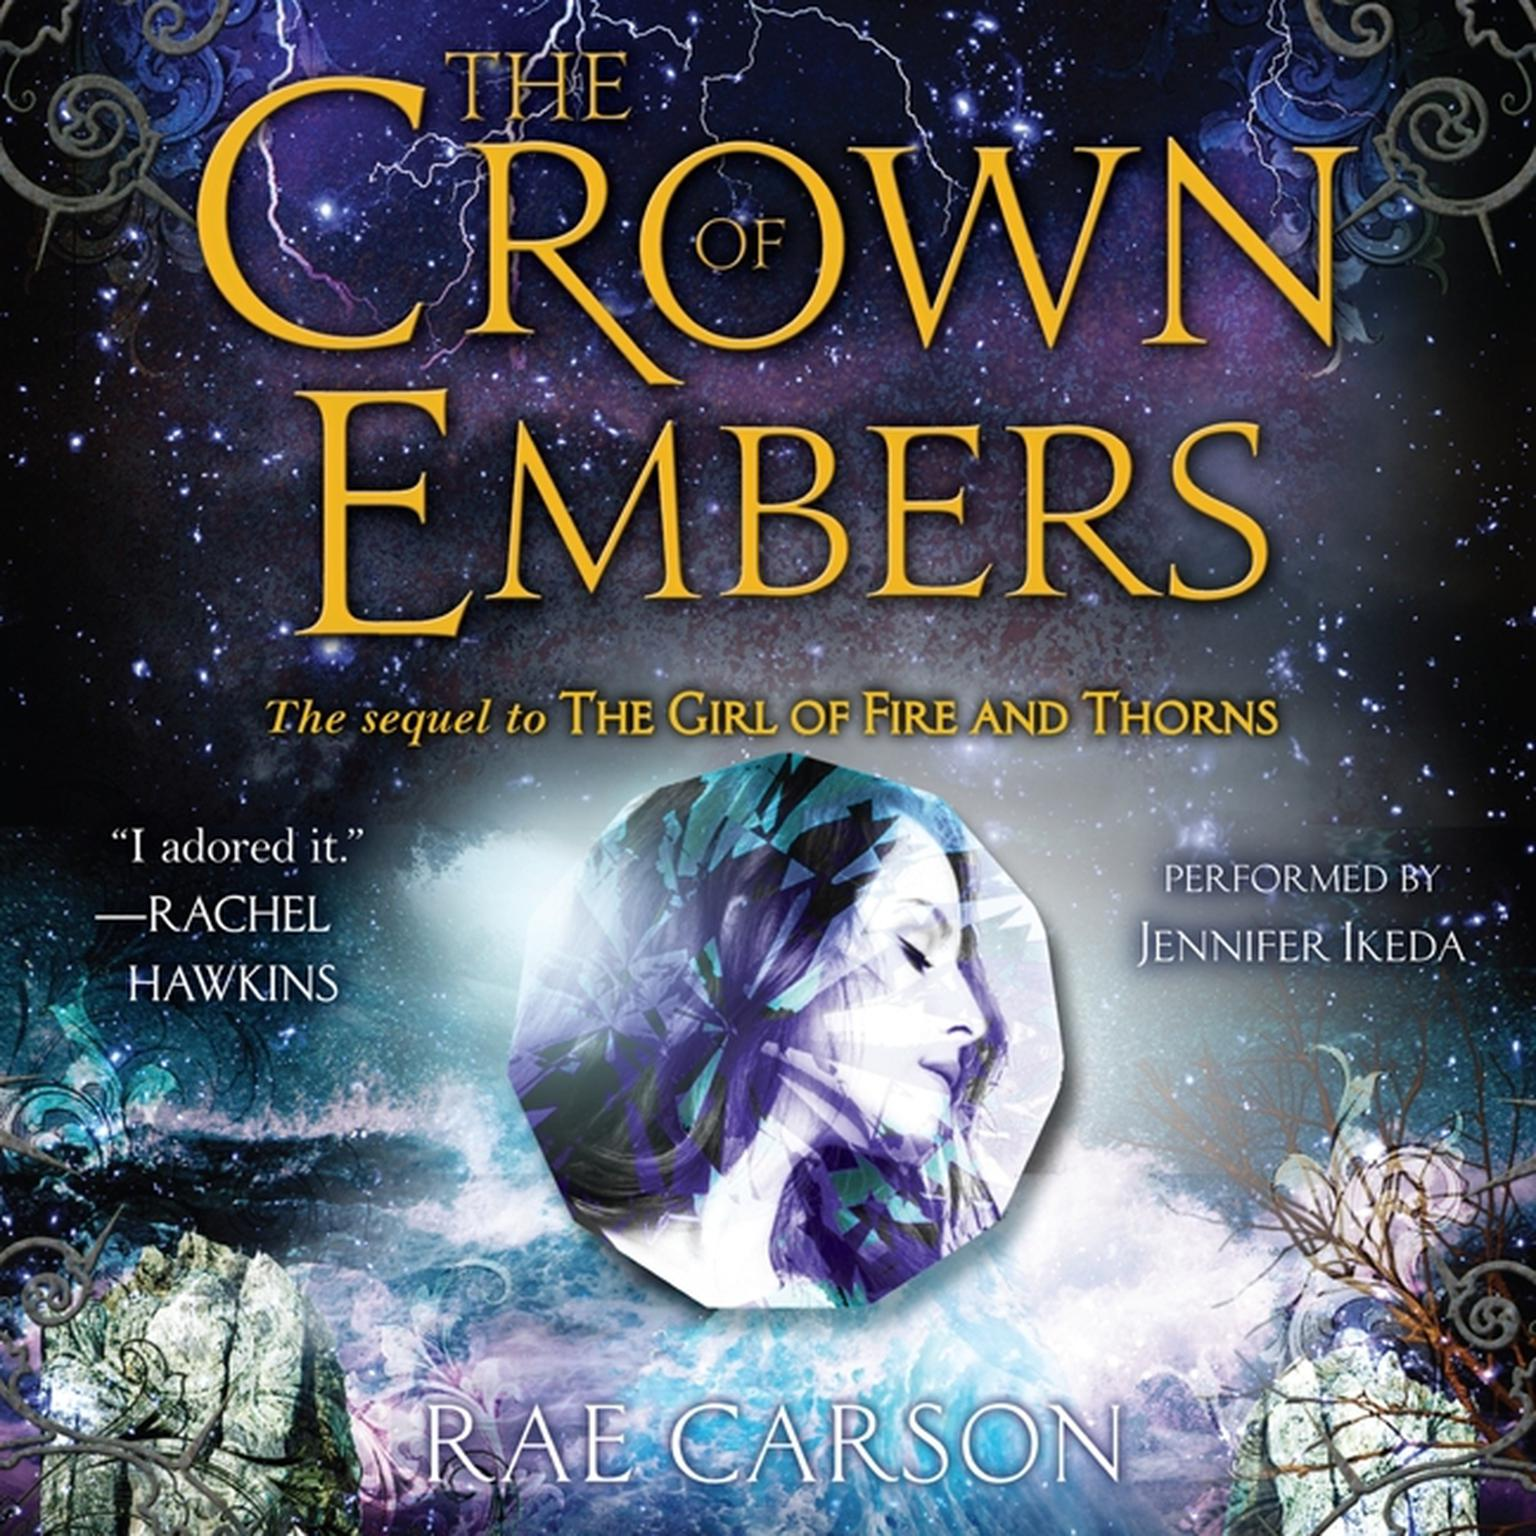 Printable The Crown of Embers Audiobook Cover Art